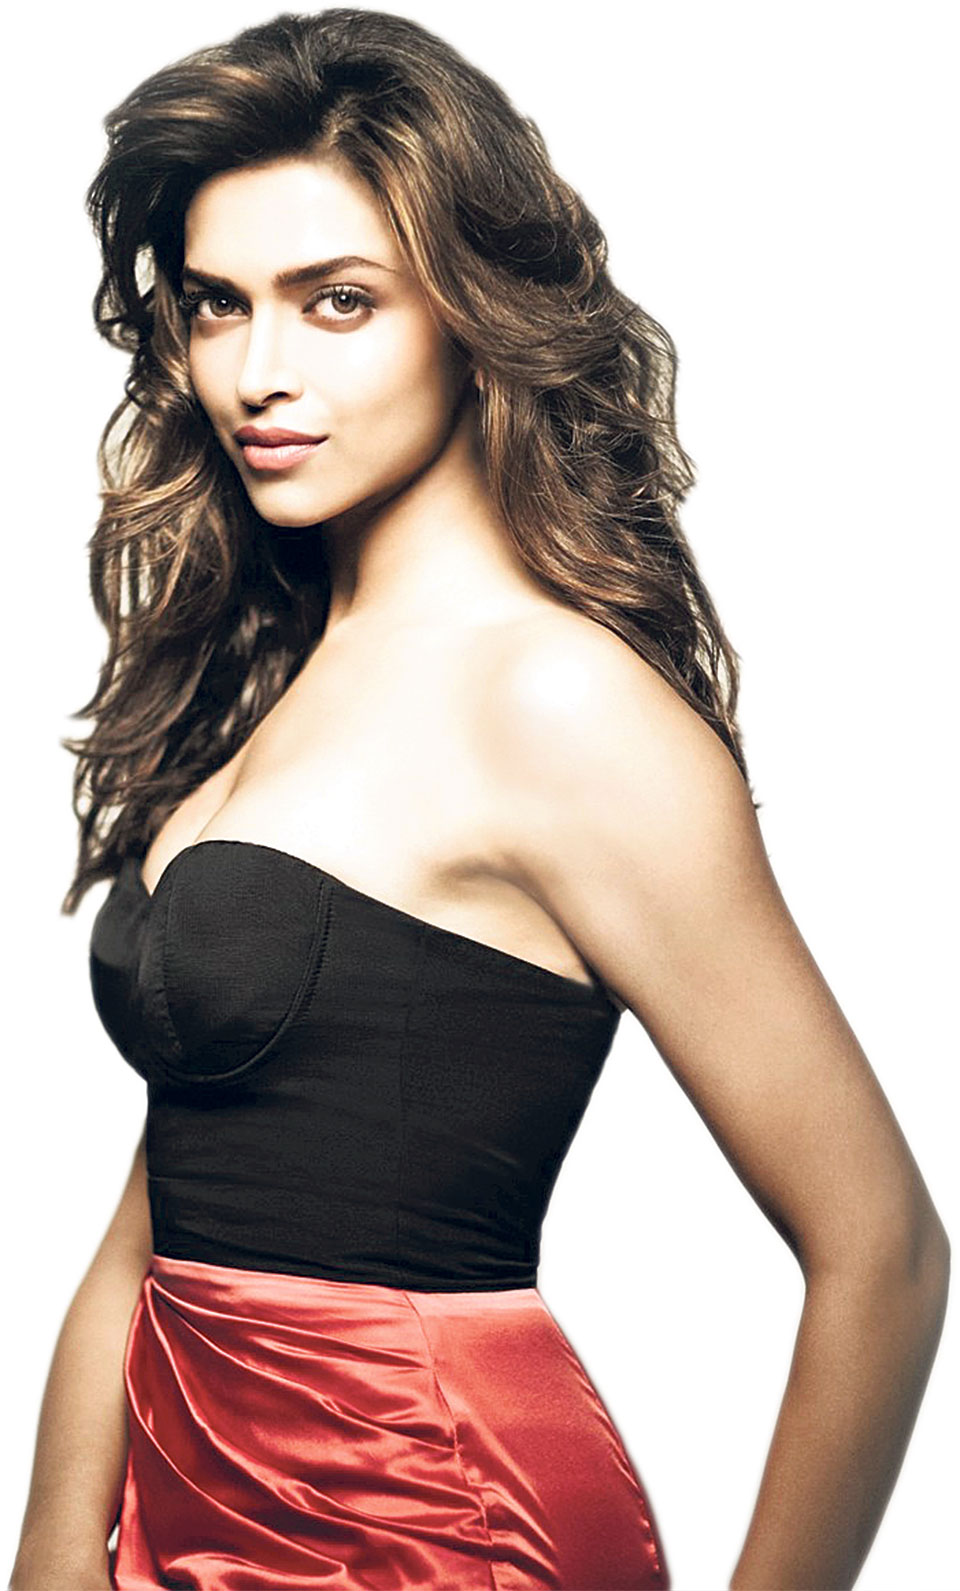 Don't think I'm completely over depression: Deepika